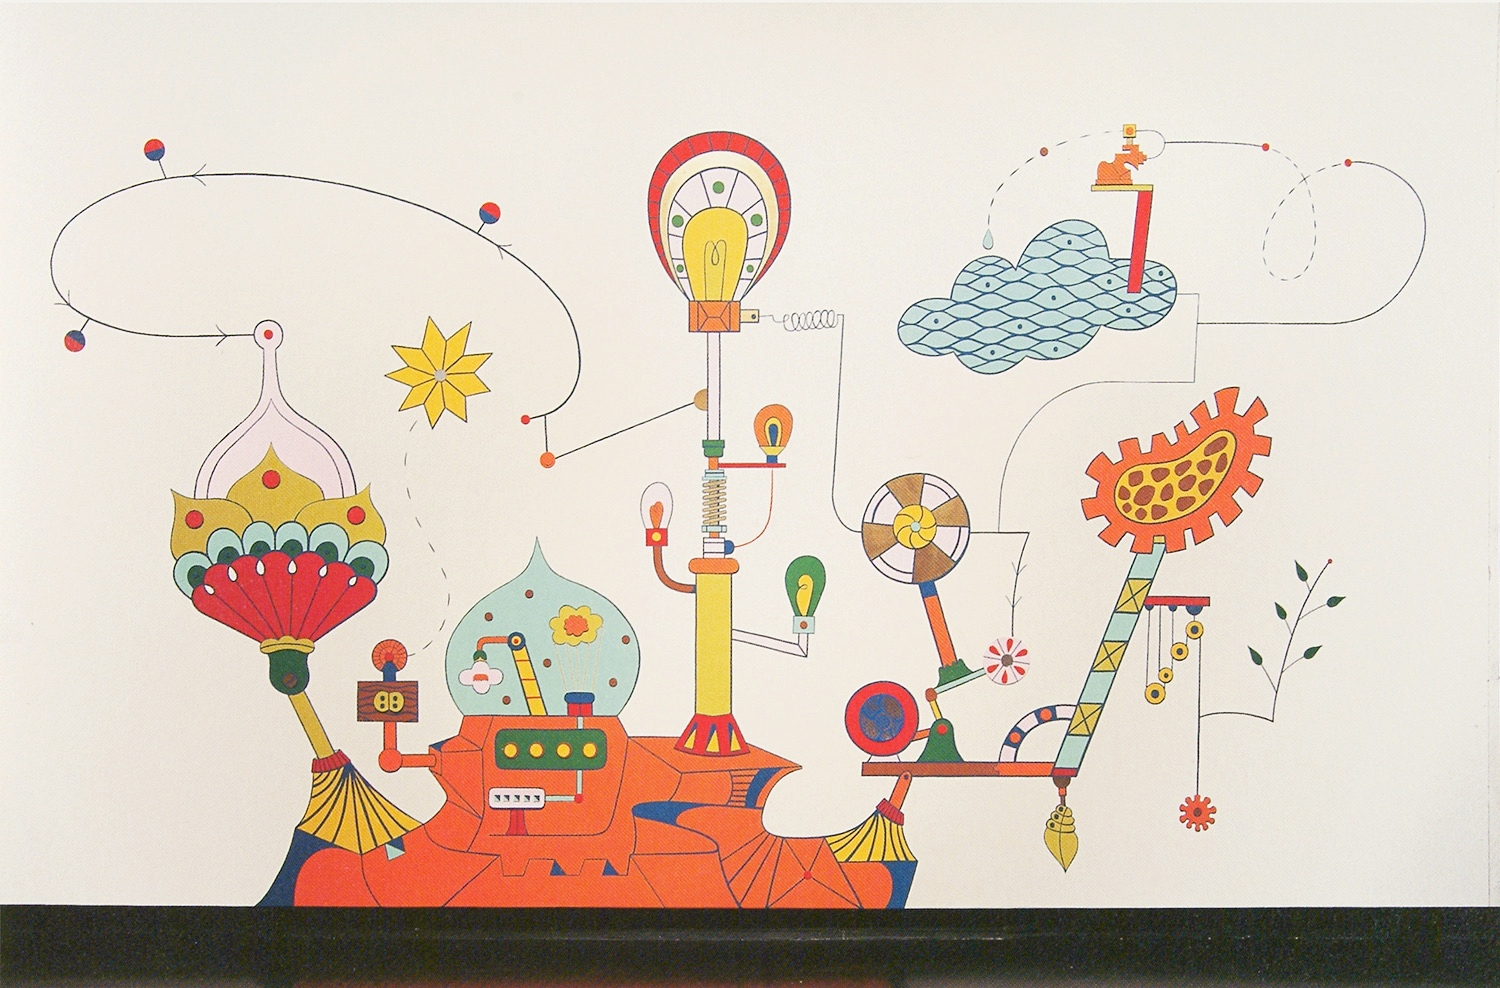 Physical Plant II , 13 x 17 ft. acrylic, mixed media mural  with collage components,  Tang Museum, Skidmore College,  Saratoga Springs, NY, 2002. Exhibition:  Chain Reaction: Rube Goldberg and Contemporary Art